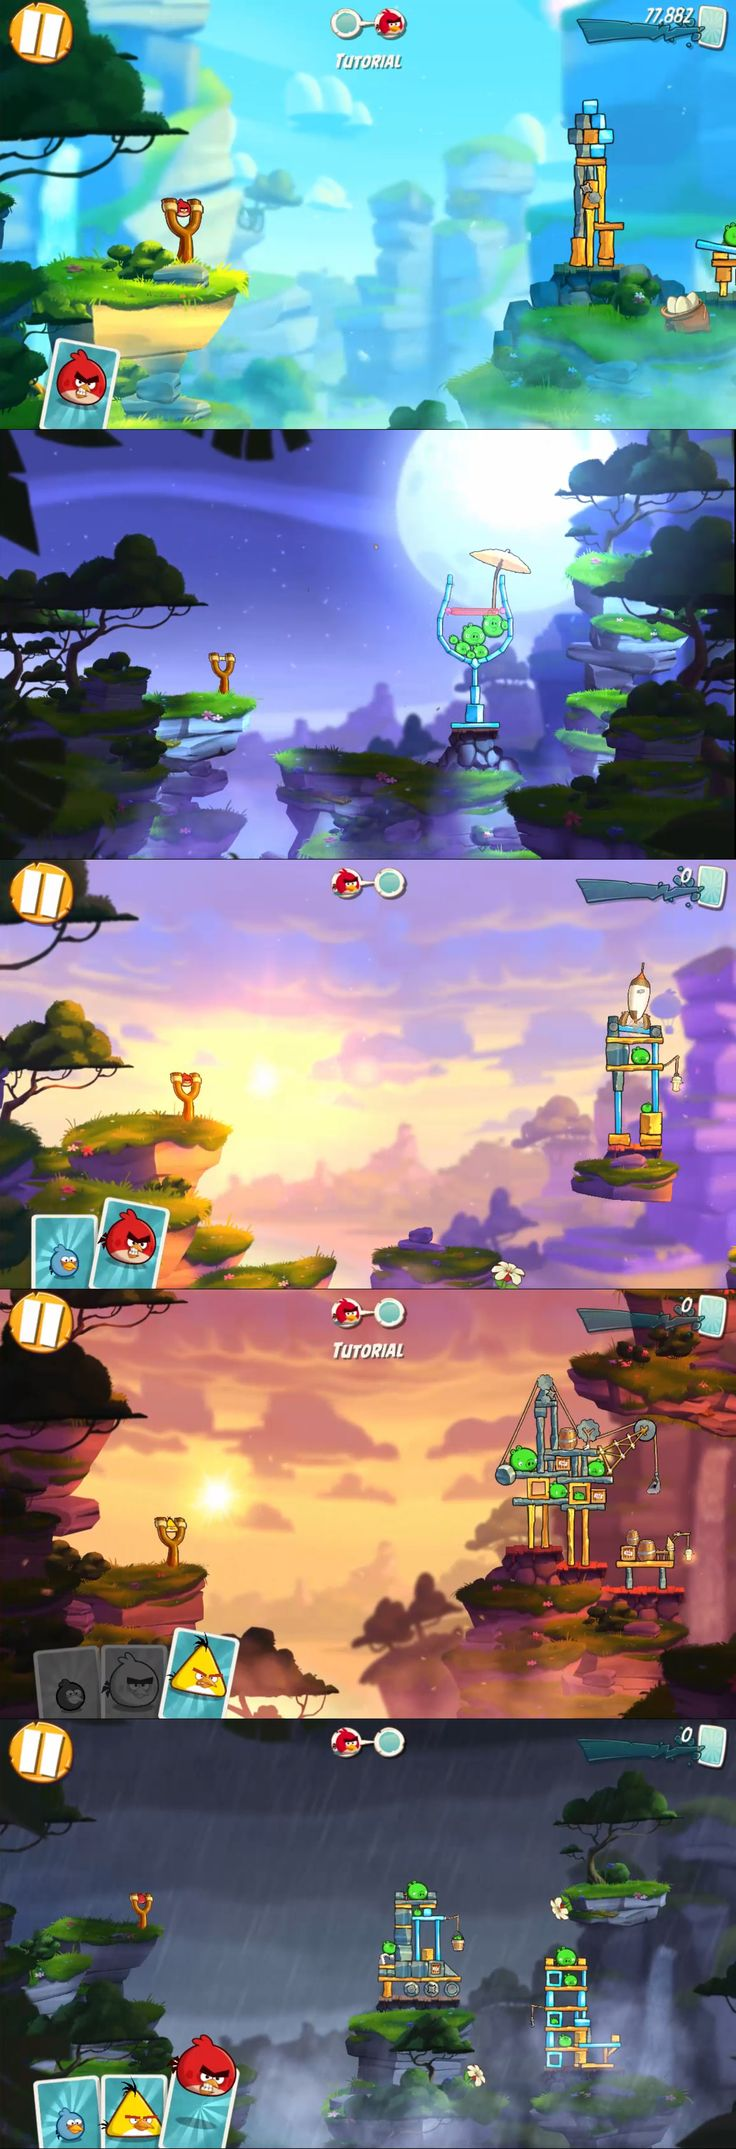 Angry Birds 2 Game Arenas from Level 1 to Level 5.  To check more about the new arena from latest game angry birds 2, high score strategies, game walk-through, visit our YouTube channel and subscribe our channel BeginnerstoAdvance and get update with new game strategies.  Like and Share the Video in the channel.